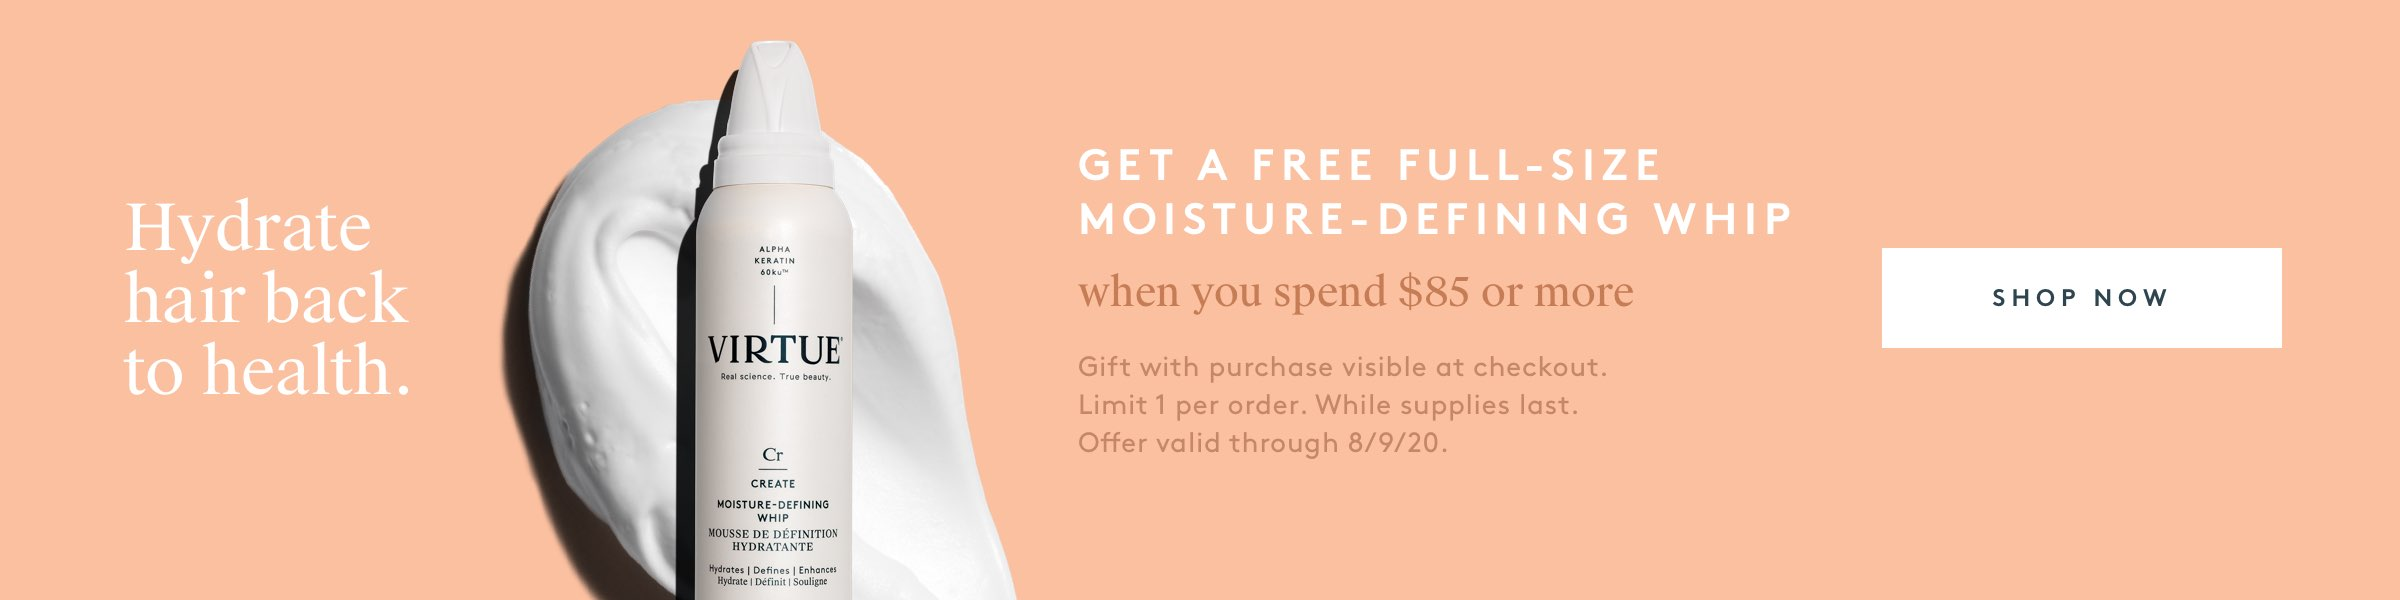 Get a free full-size Moisture-Defining Whip when you spend $85 or more